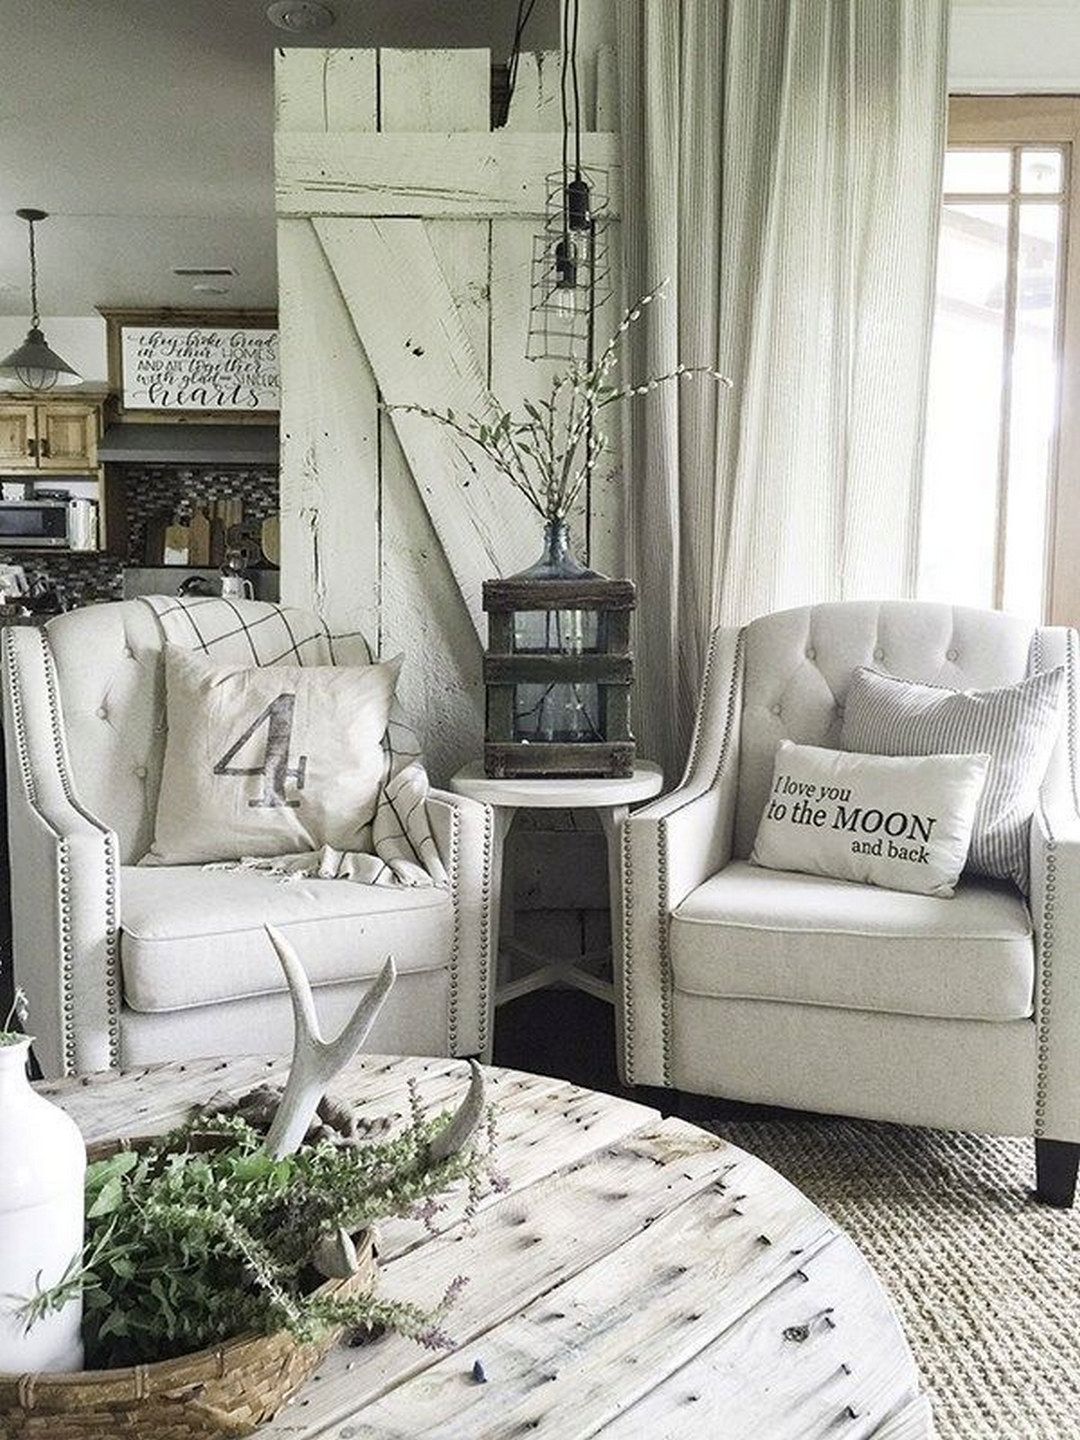 4 Things You Need to Know About Farmhouse Style House Design ... on vintage home interior, vintage spanish interior, vintage kitchen interior, vintage shop interior, french country cottage interior, vintage motel interior, vintage studio interior, vintage office interior, vintage shabby chic interior, vintage craftsman interior, vintage country interior, vintage hotel interior, vintage apartment interior, vintage modern interior, vintage victorian house interior, vintage industrial interior, vintage cabin interior, vintage beach interior, vintage mansion interior, bungalow interior,